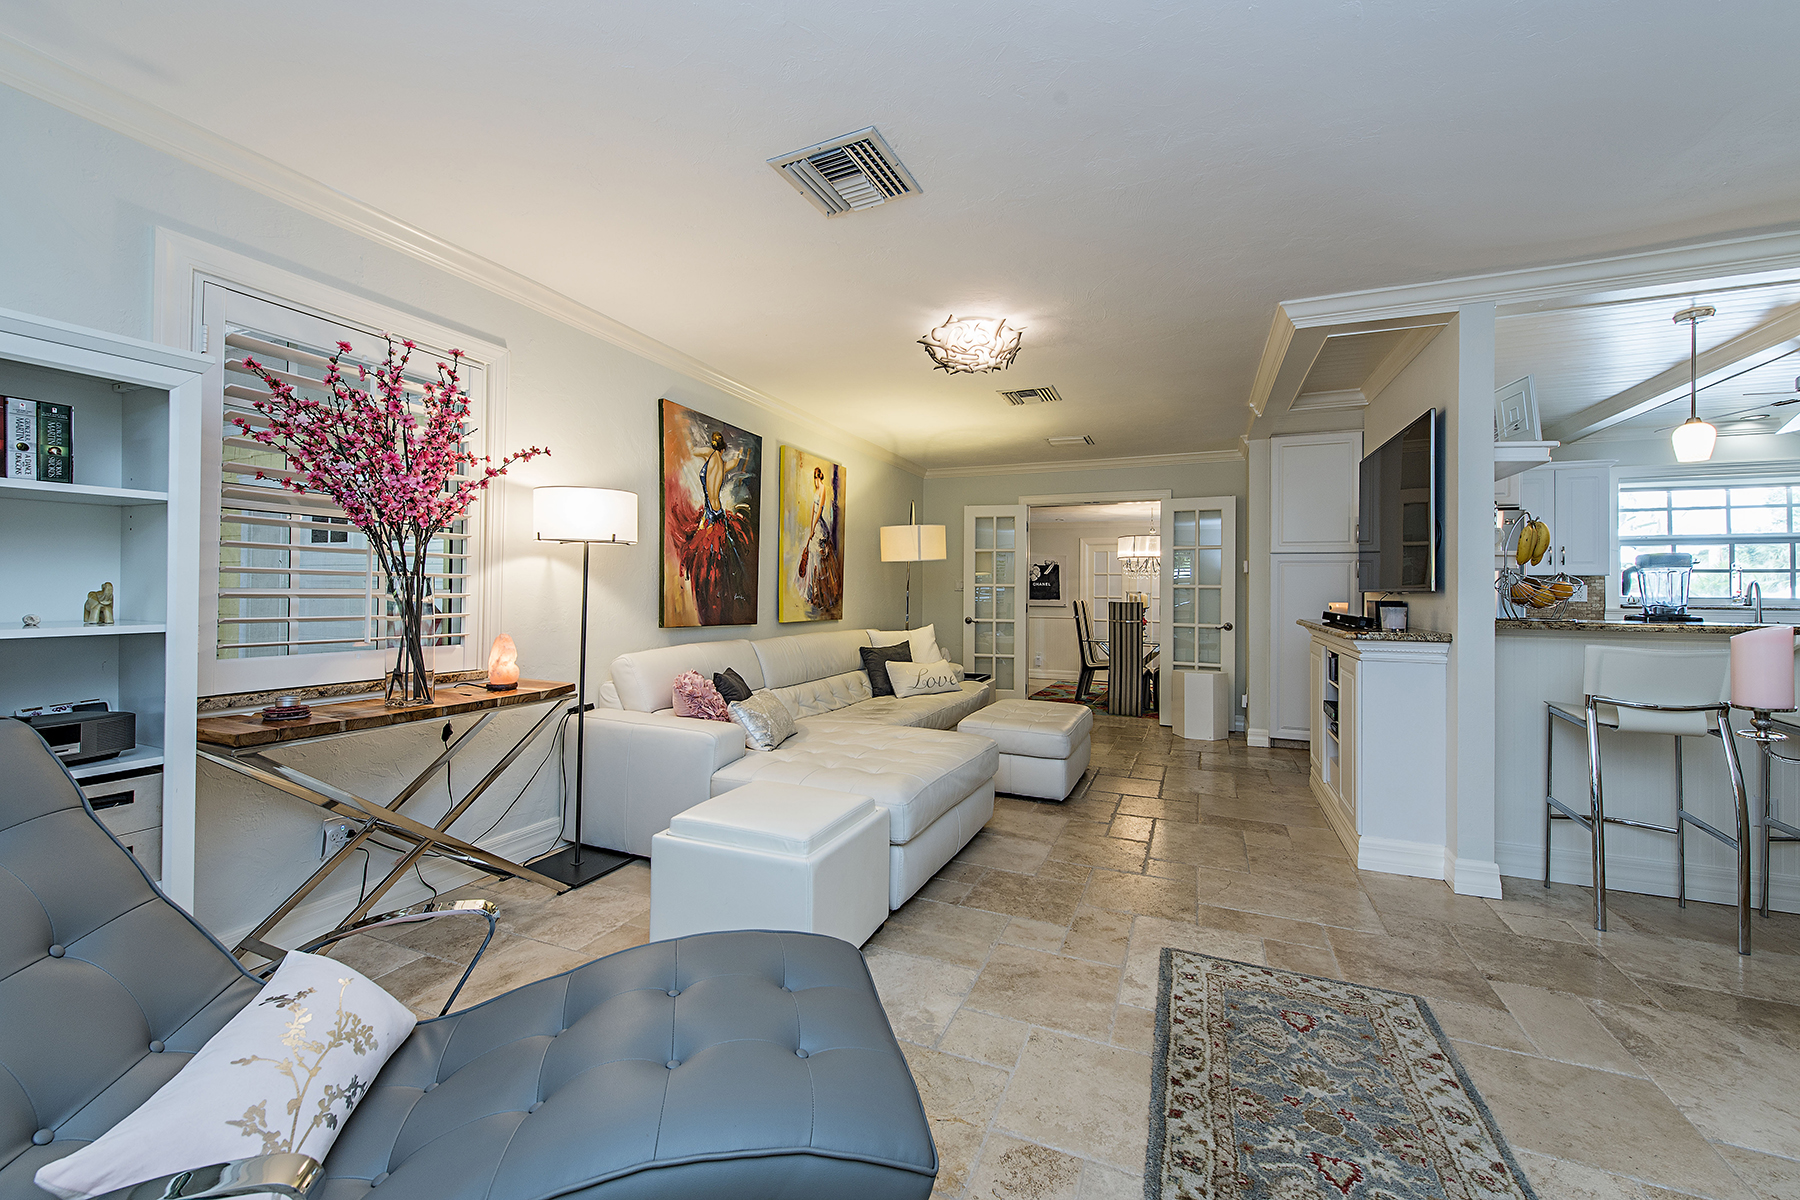 Single Family Home for Sale at LAKE PARK 1253 12th Ave N Naples, Florida, 34102 United States